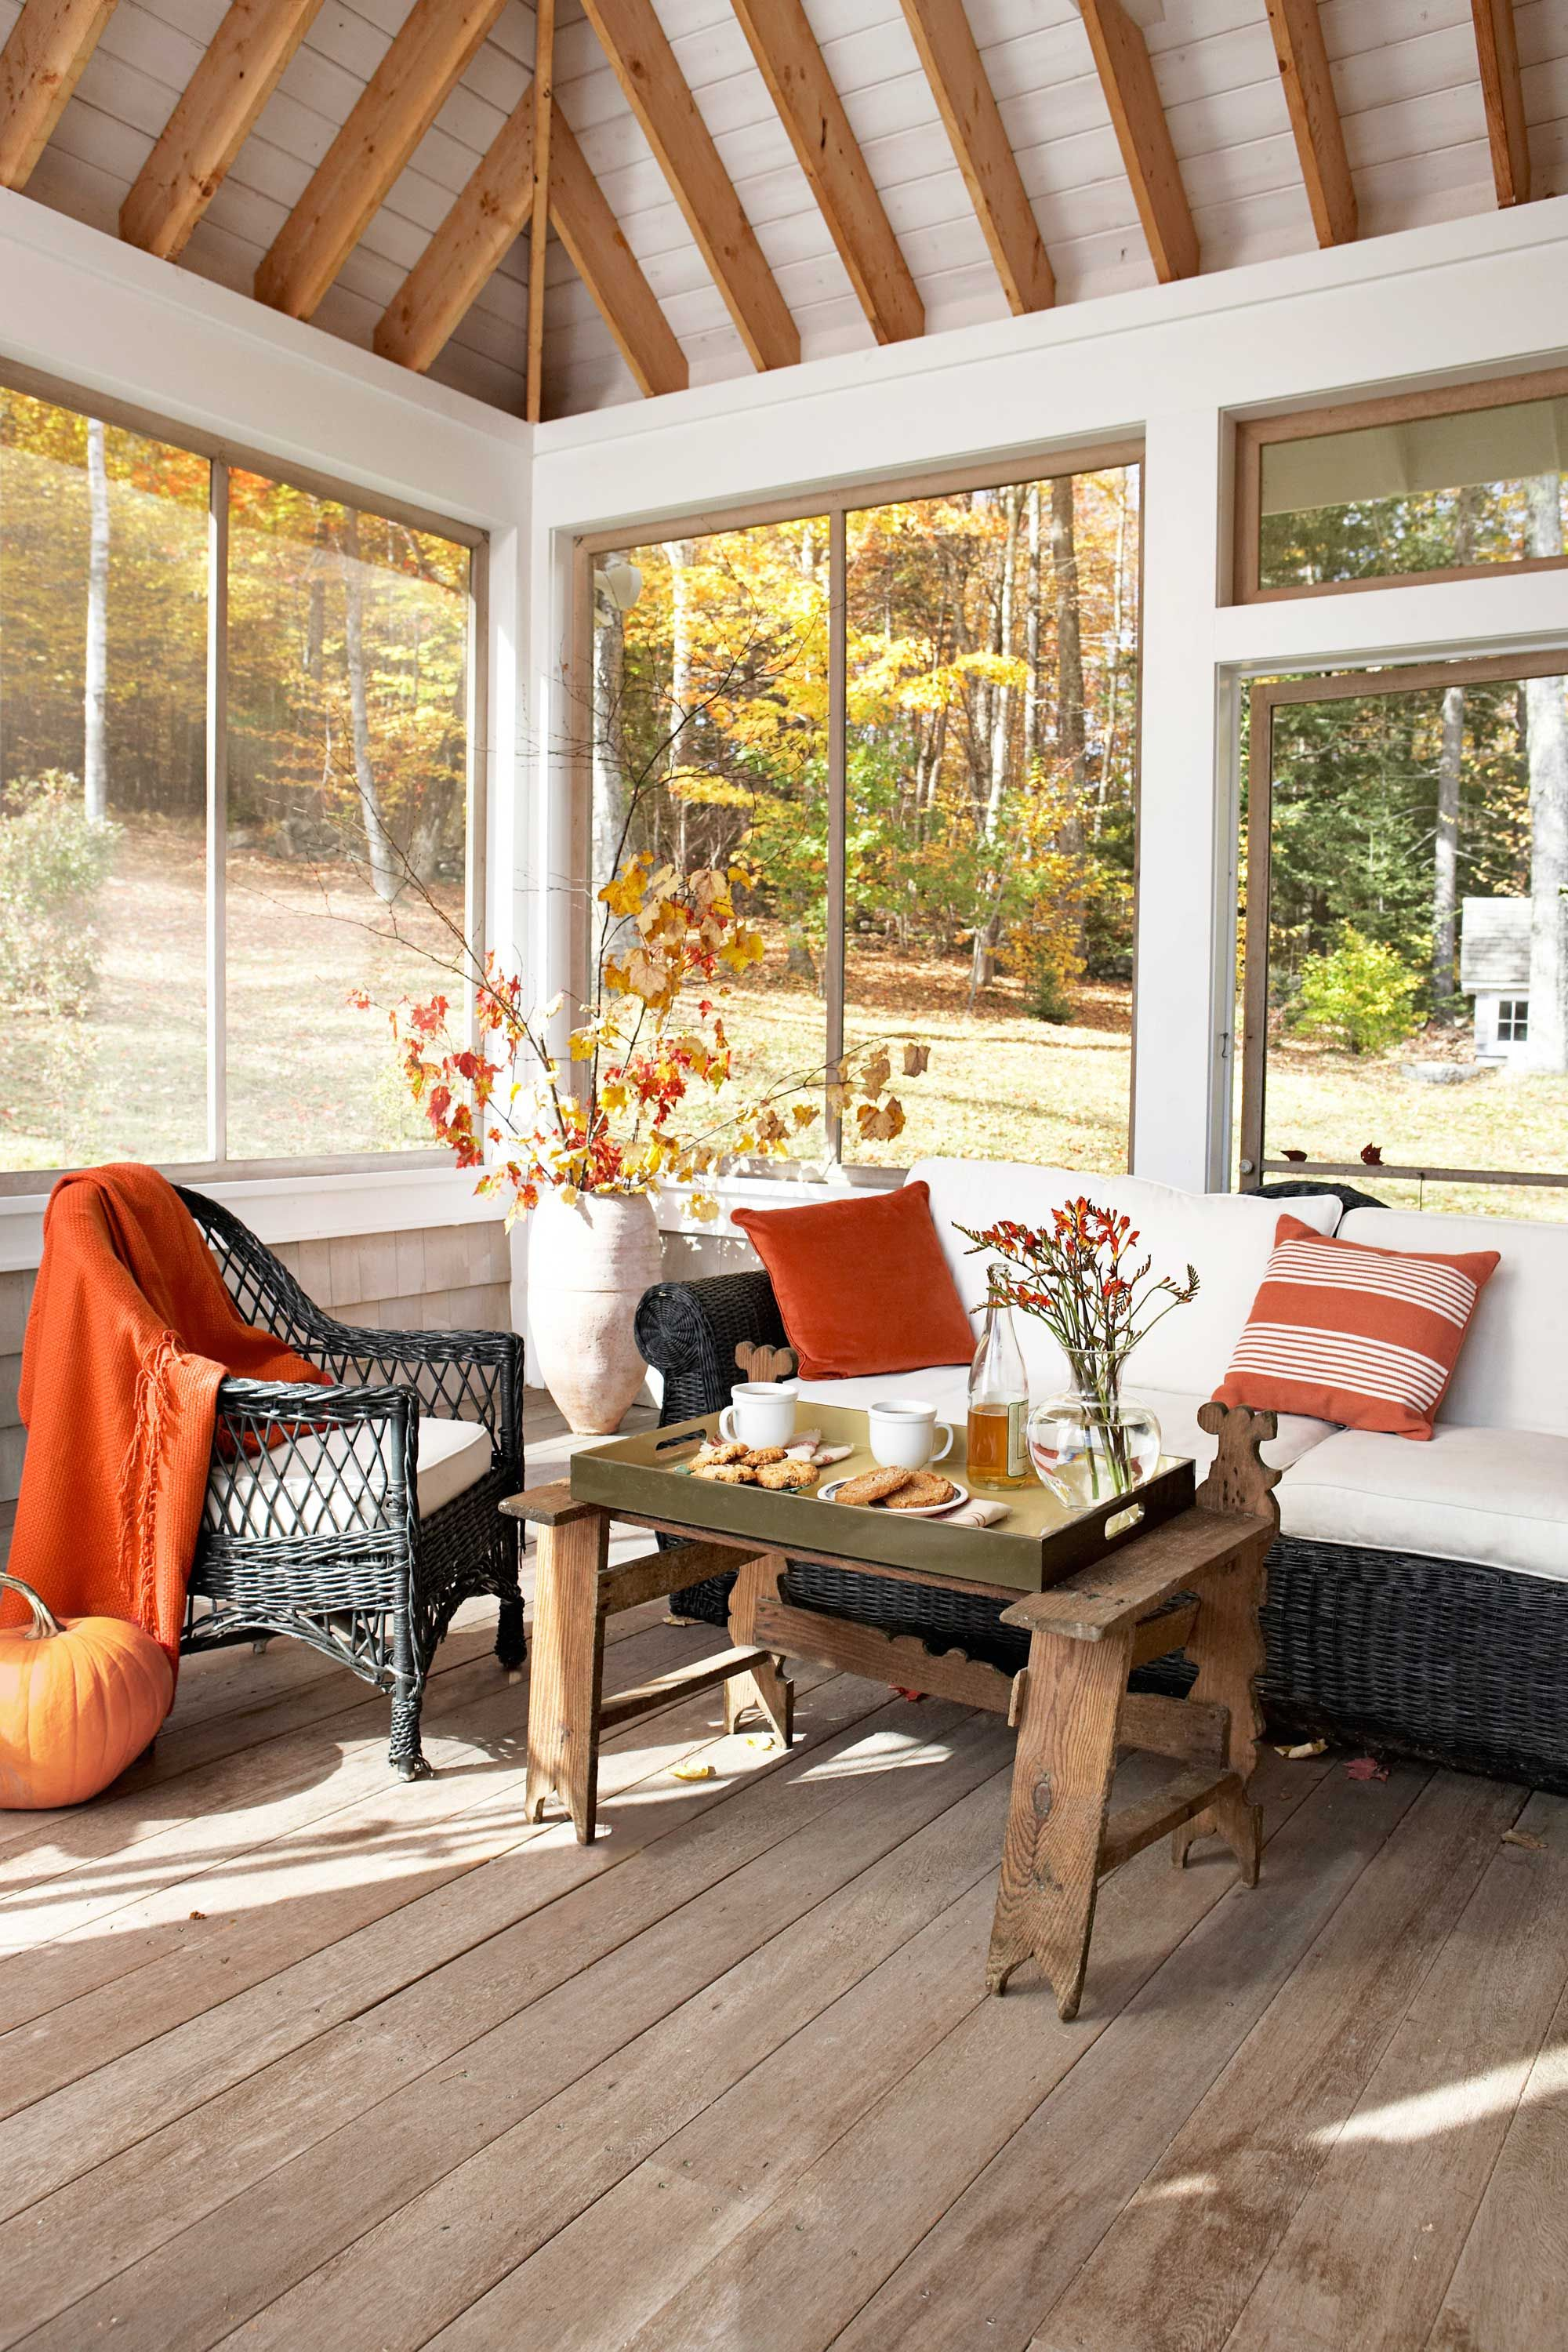 47 Easy Fall Decorating Ideas - Autumn Decor Tips to Try